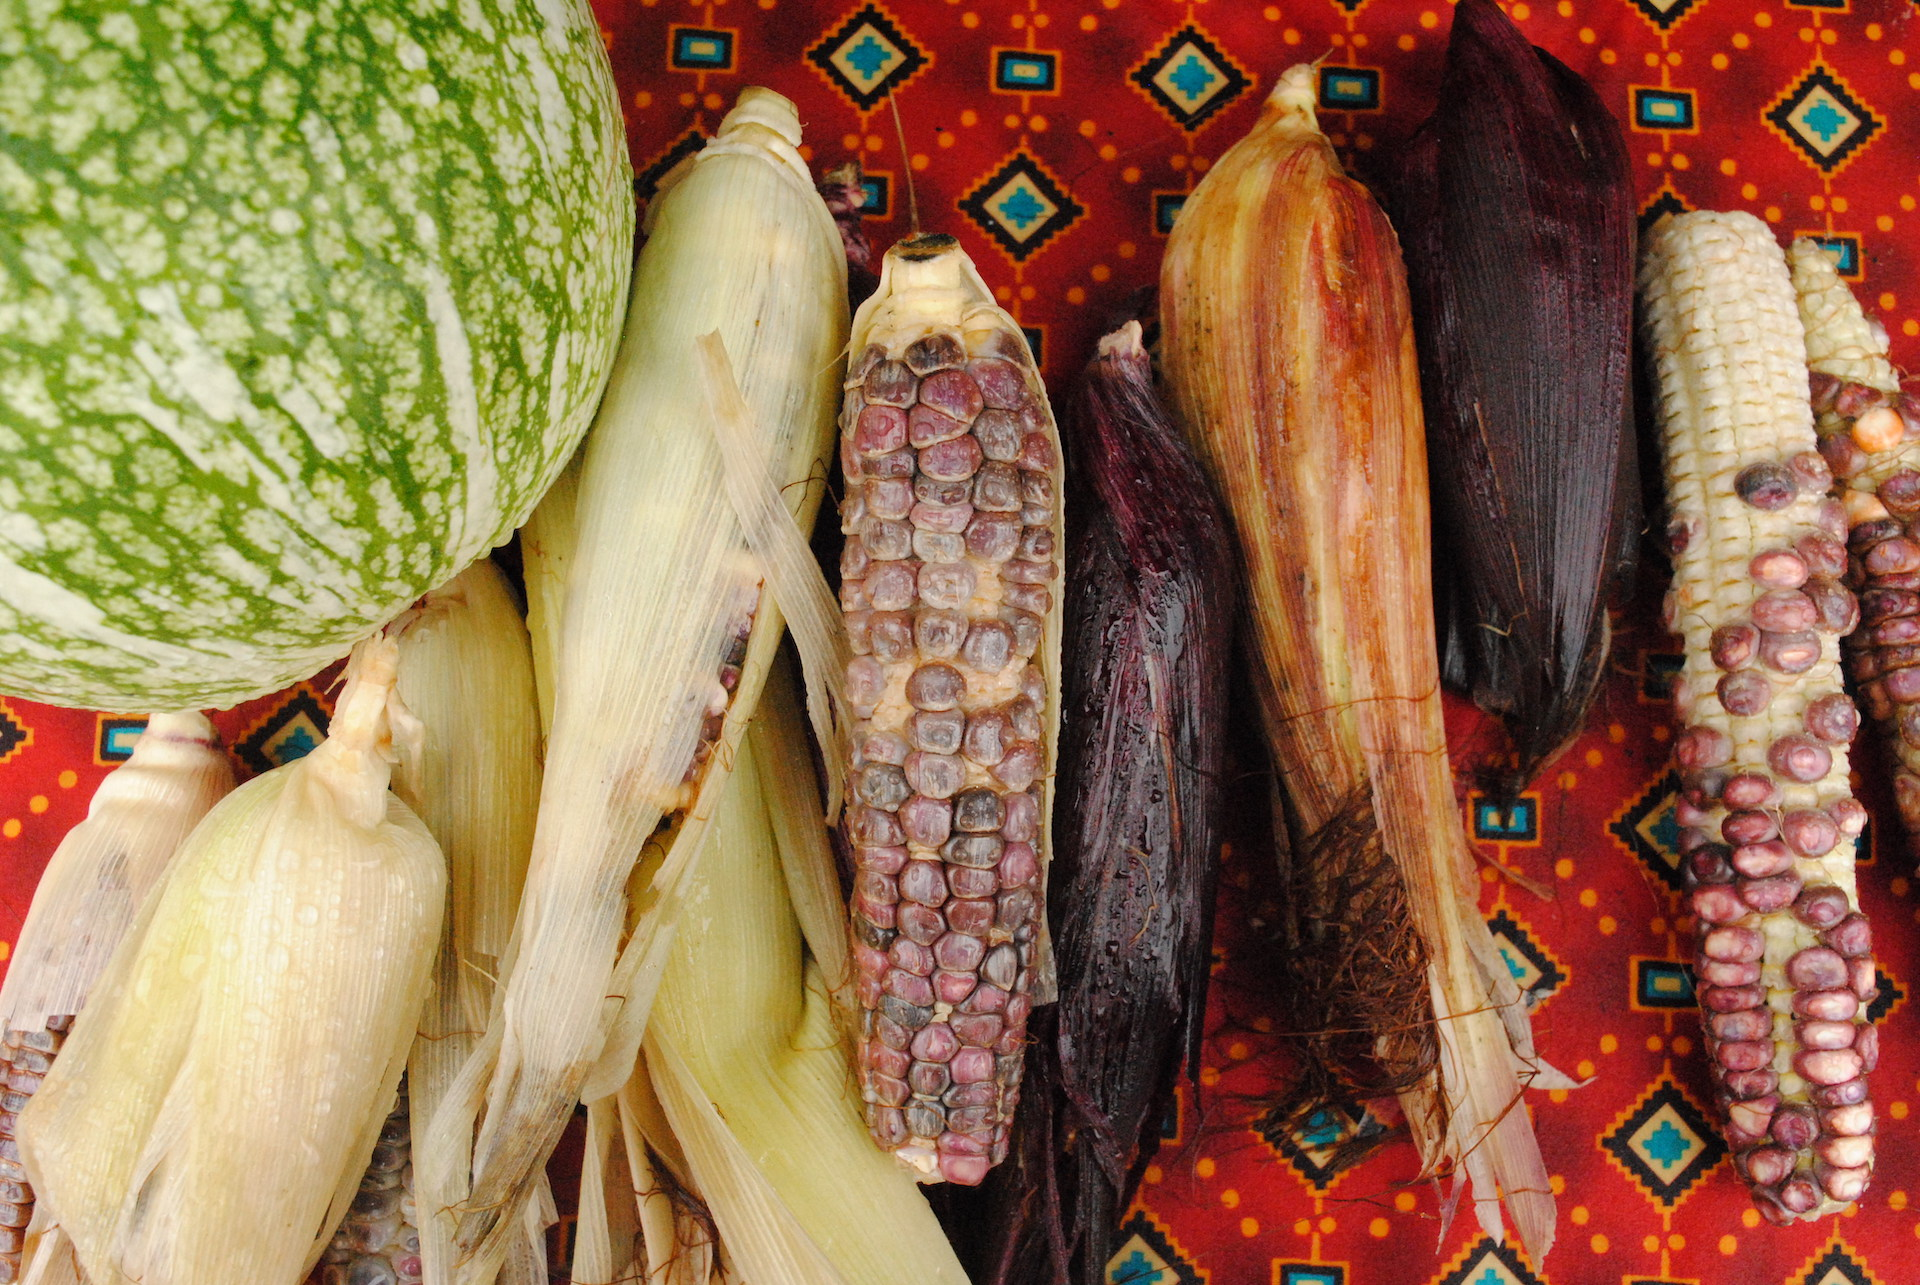 An array of corns in different colors